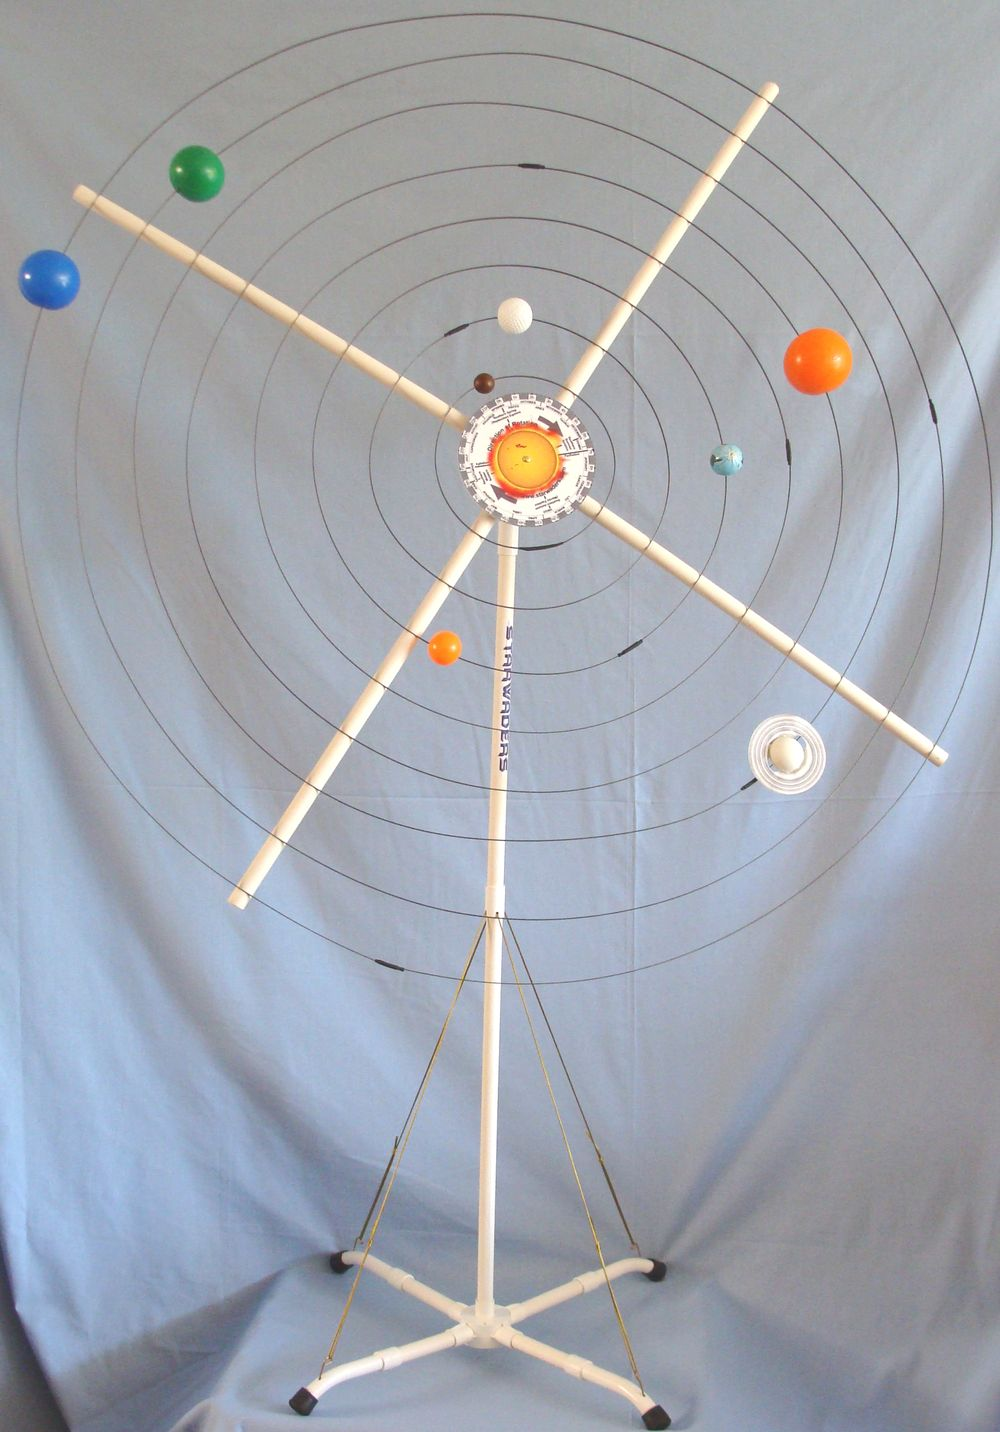 3d solar system model ideas - photo #17